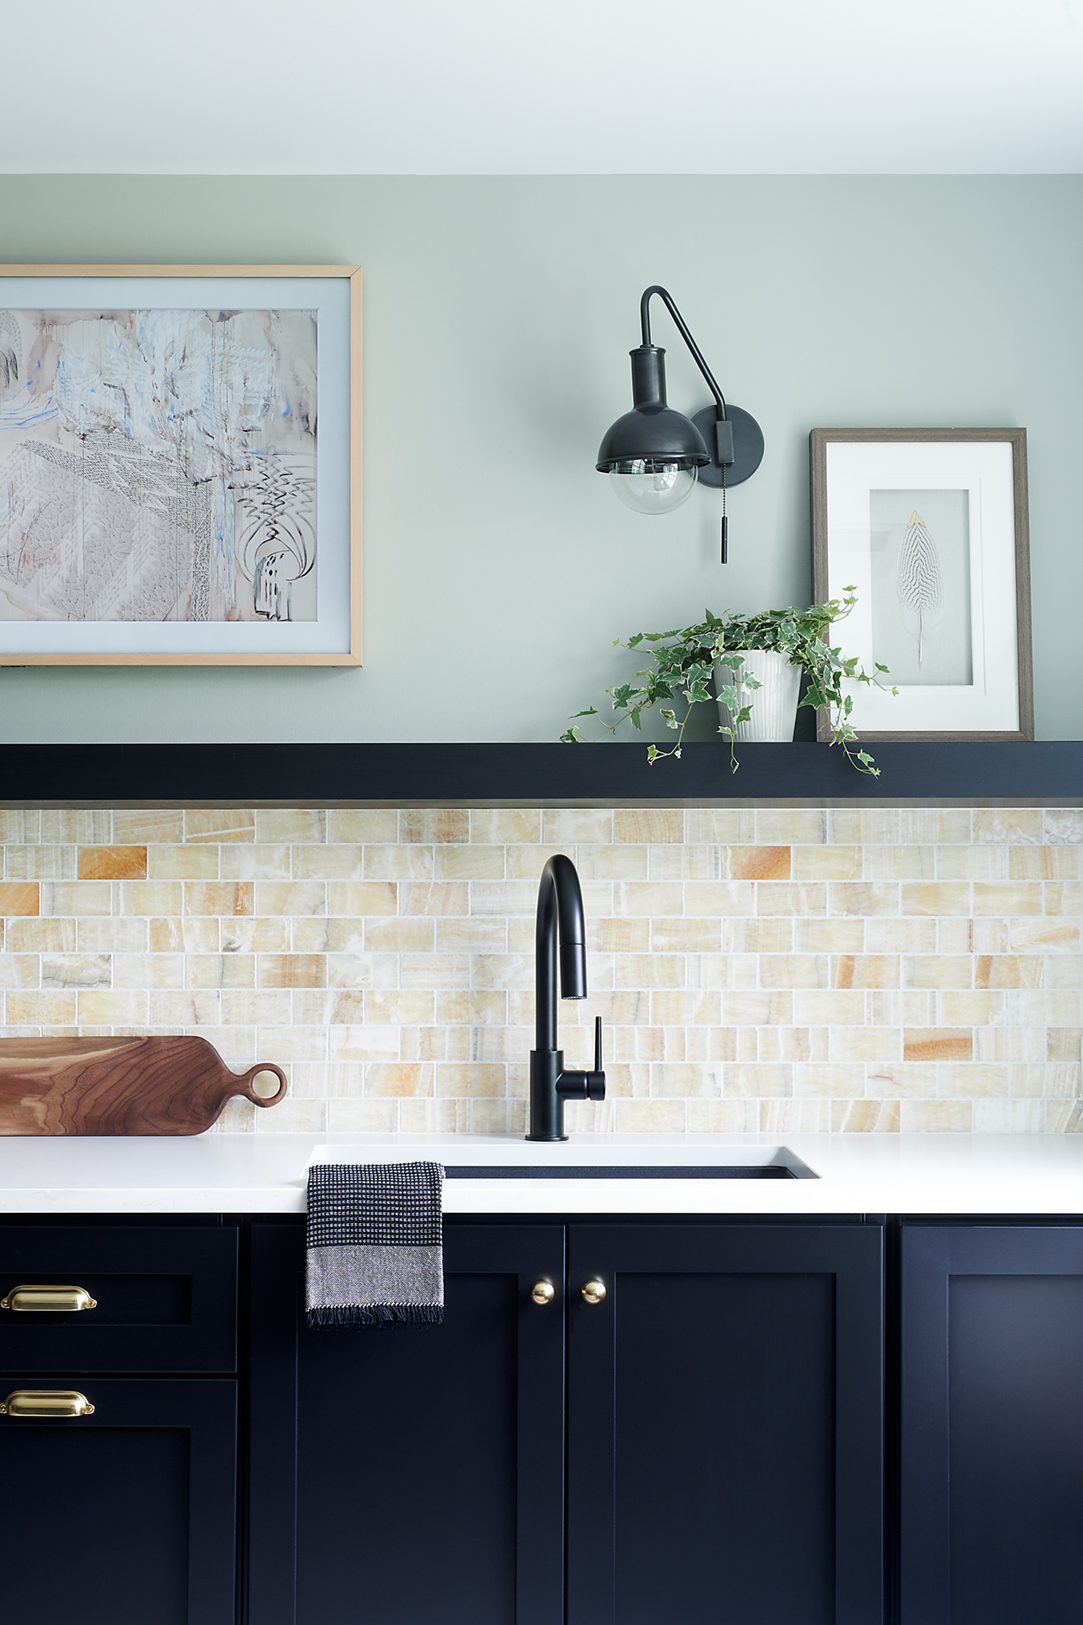 These shaker-style cabinets are a chic statement and conceal a trash & recycling bin and an integrated dishwasher for easy cleanup after the party. Onyx backsplash tile provides a warm, unexpected bright bit of color and the floating shelf is the perfect spot for glasses and art display.